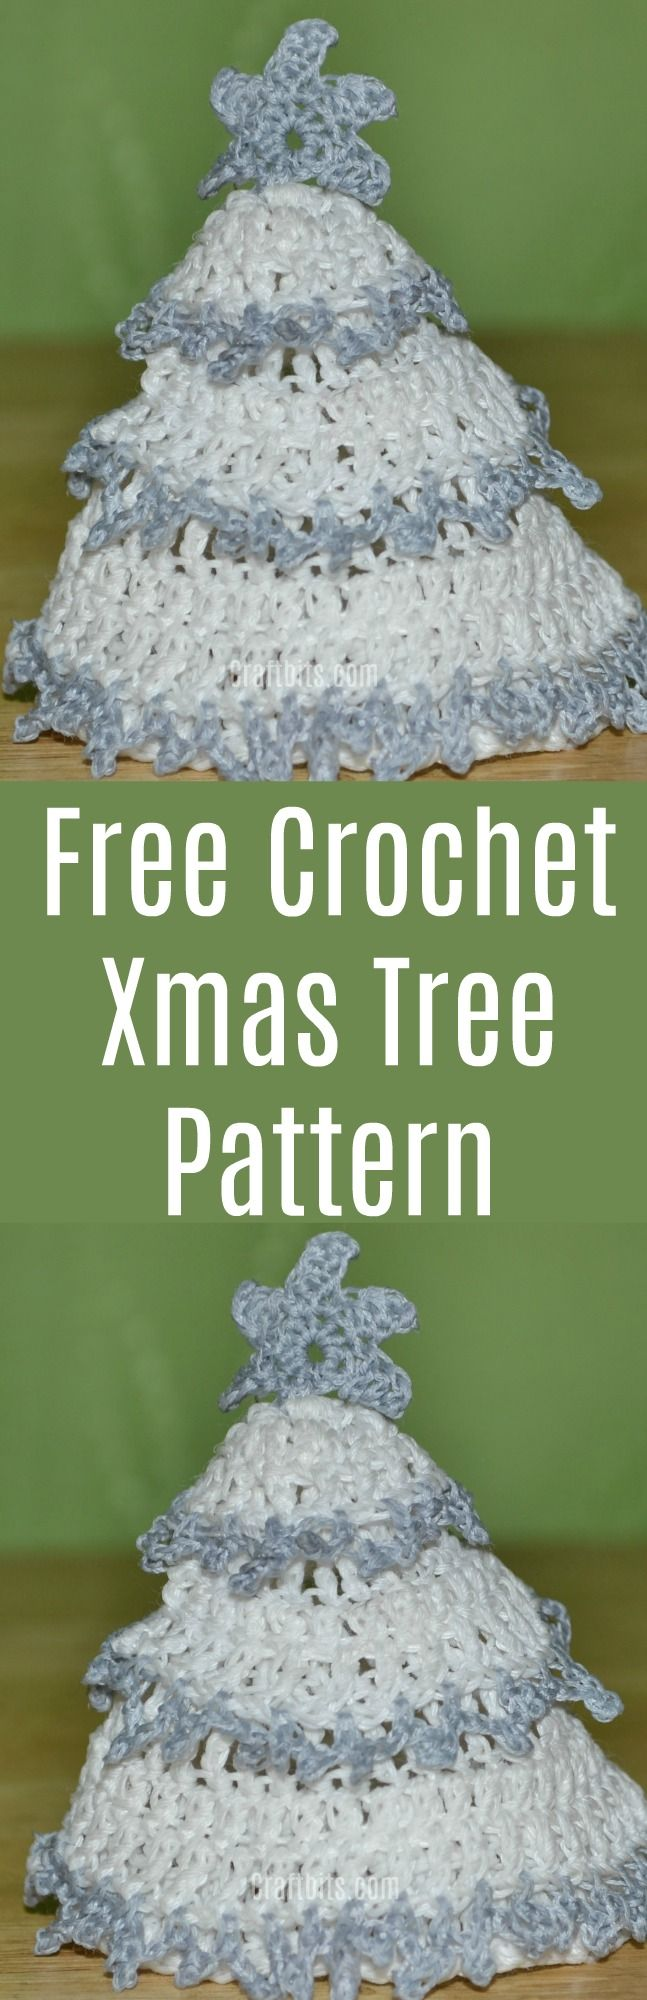 This vintage crochet pattern for a christmas tree has old world this vintage crochet pattern for a christmas tree has old world charm everything old becomes bankloansurffo Gallery